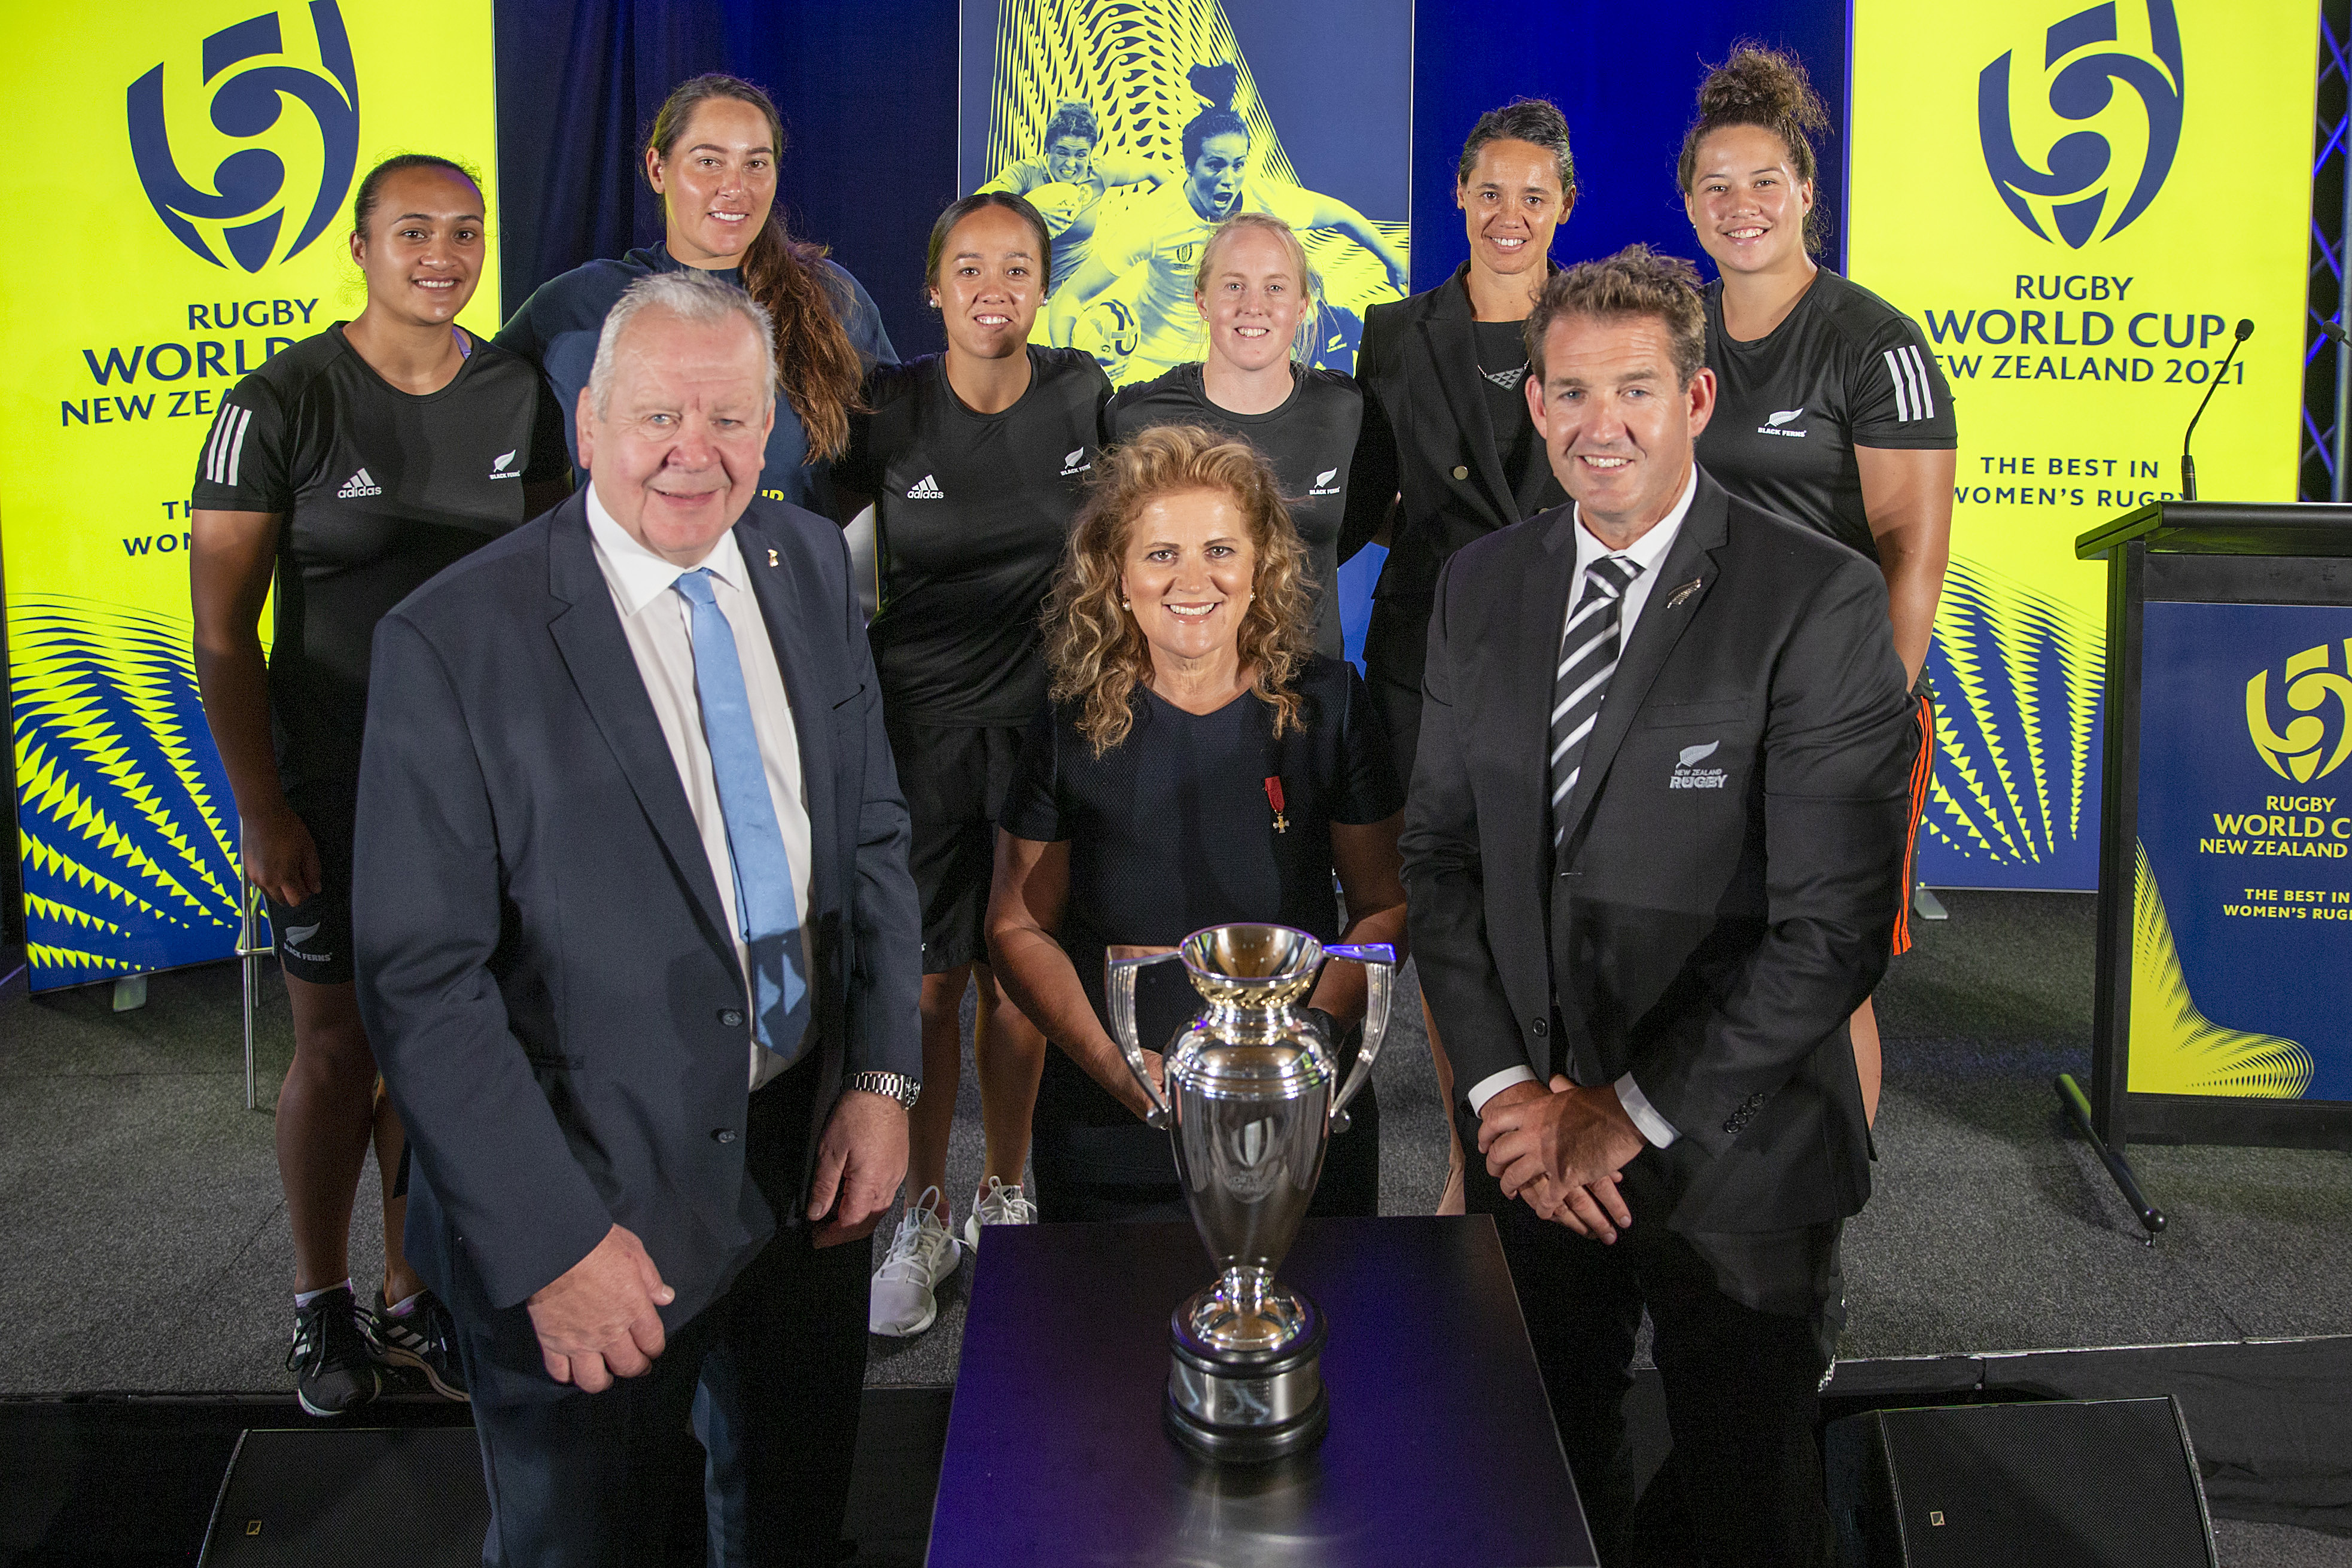 Rwc 2021 Set To Break New Ground As Tournament Dates Are Announced Rugby World Cup 2021